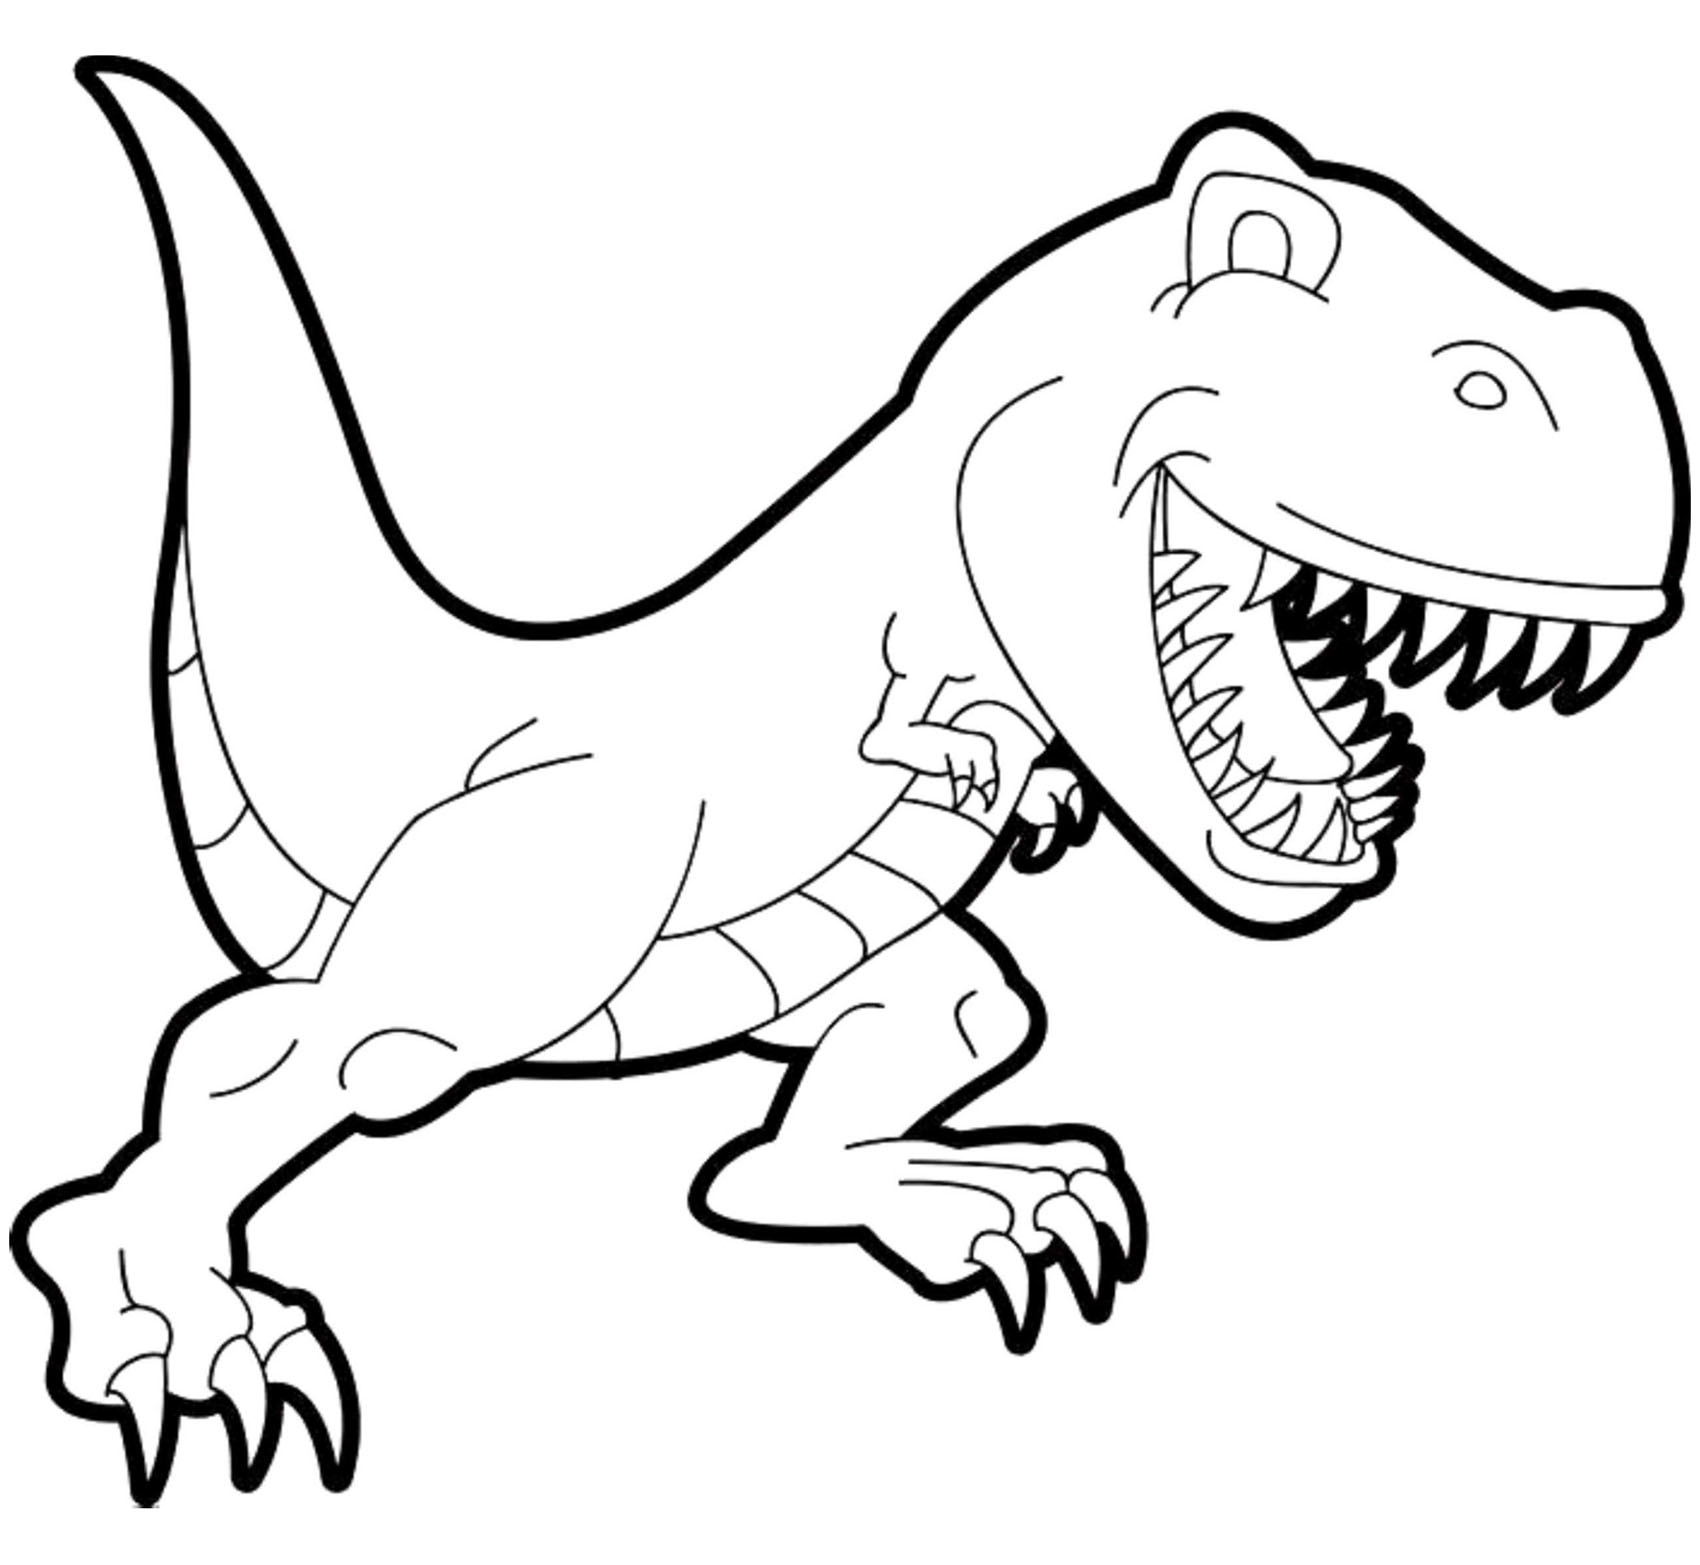 dinosaur print out coloring pages free printable dinosaur coloring pages for kids coloring out pages dinosaur print